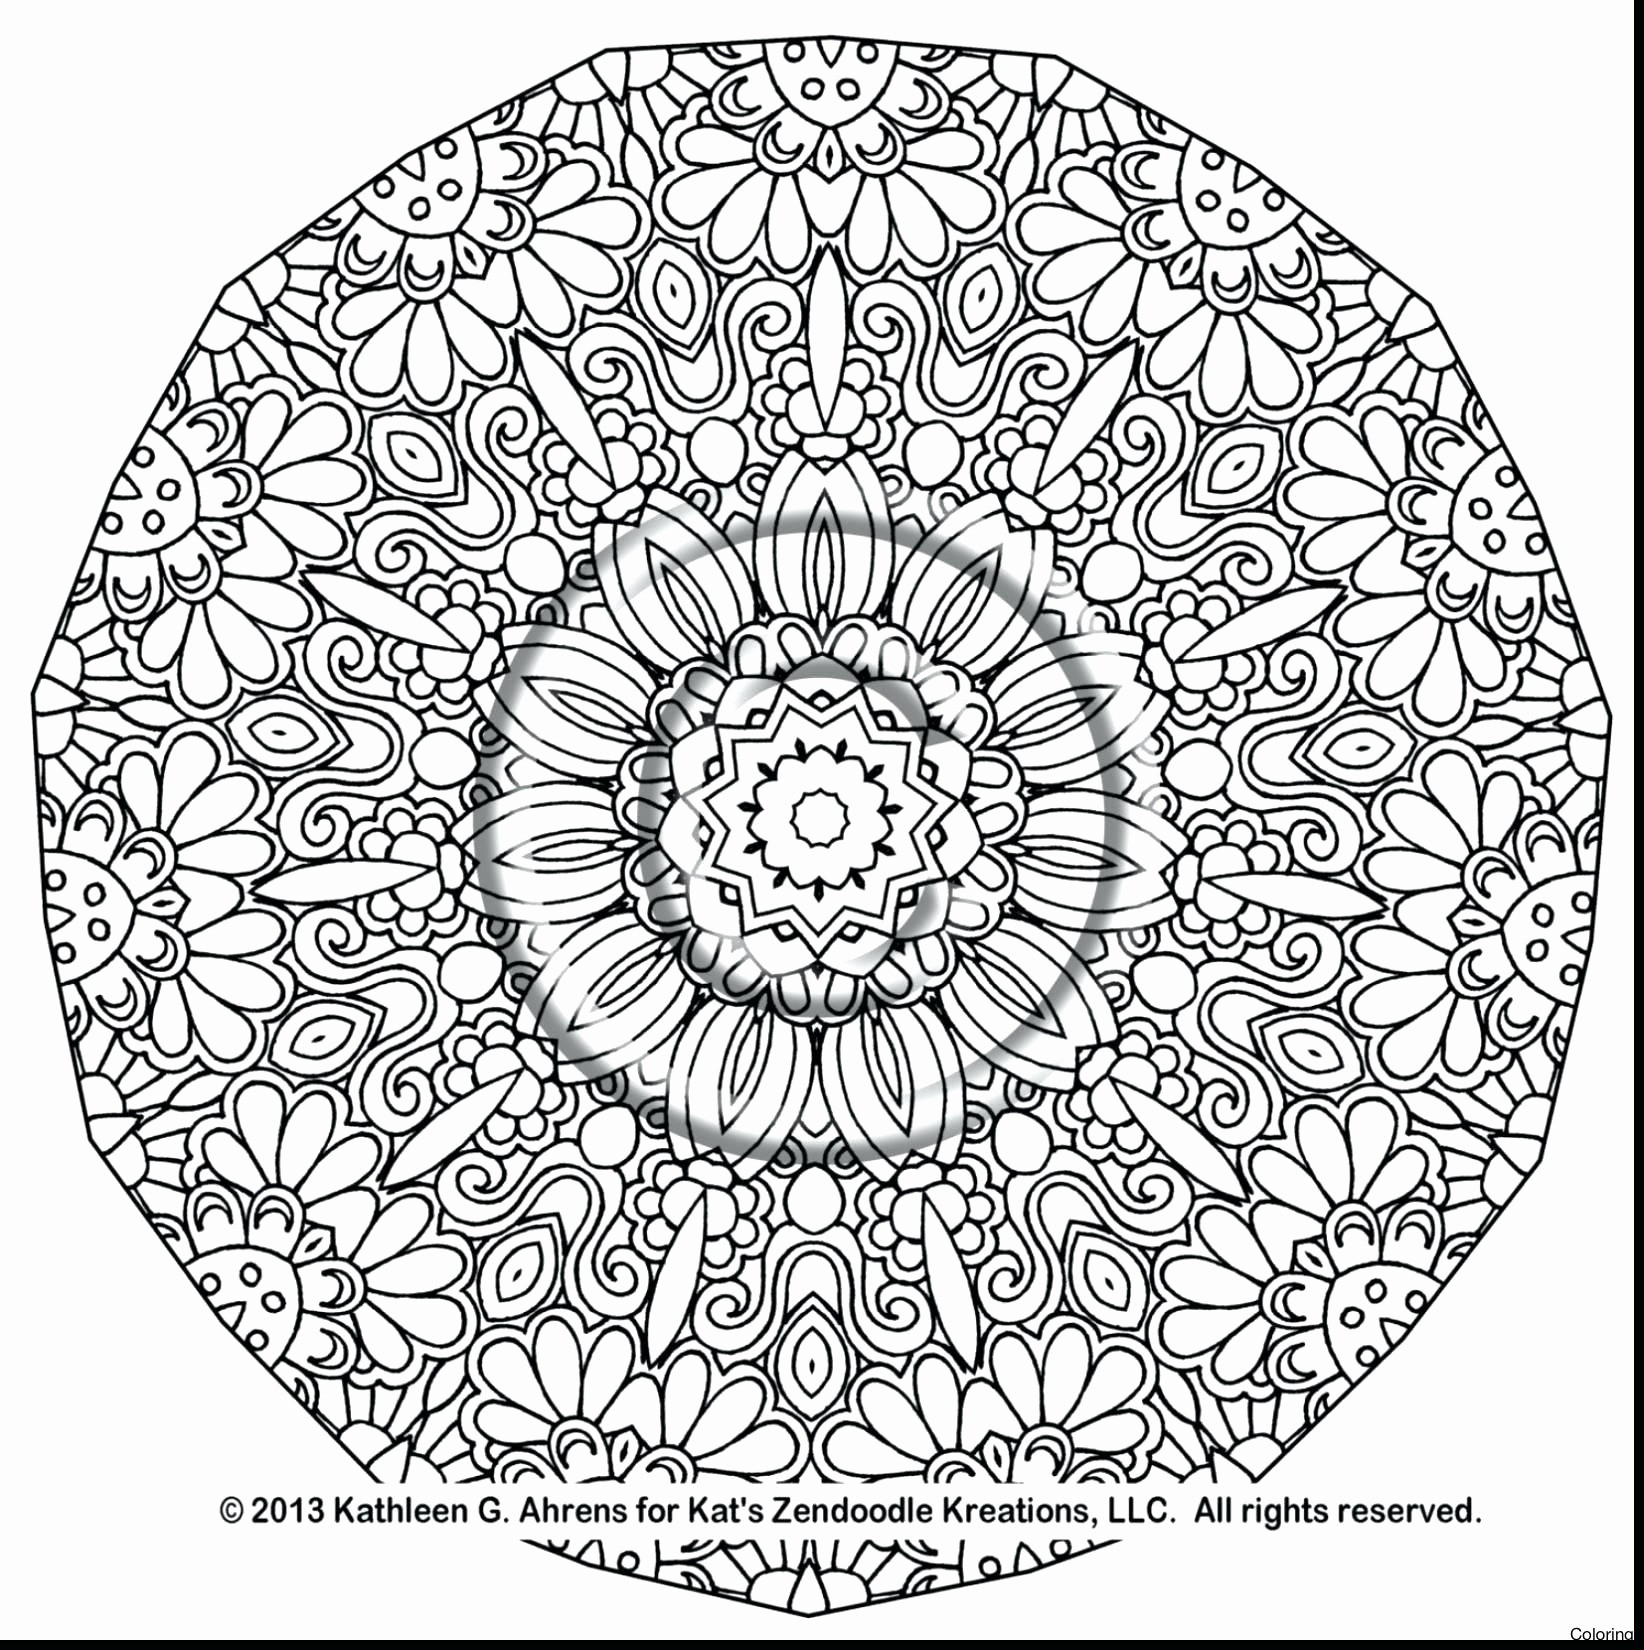 29 Mandala Coloring Pages Online Collection - Coloring Sheets